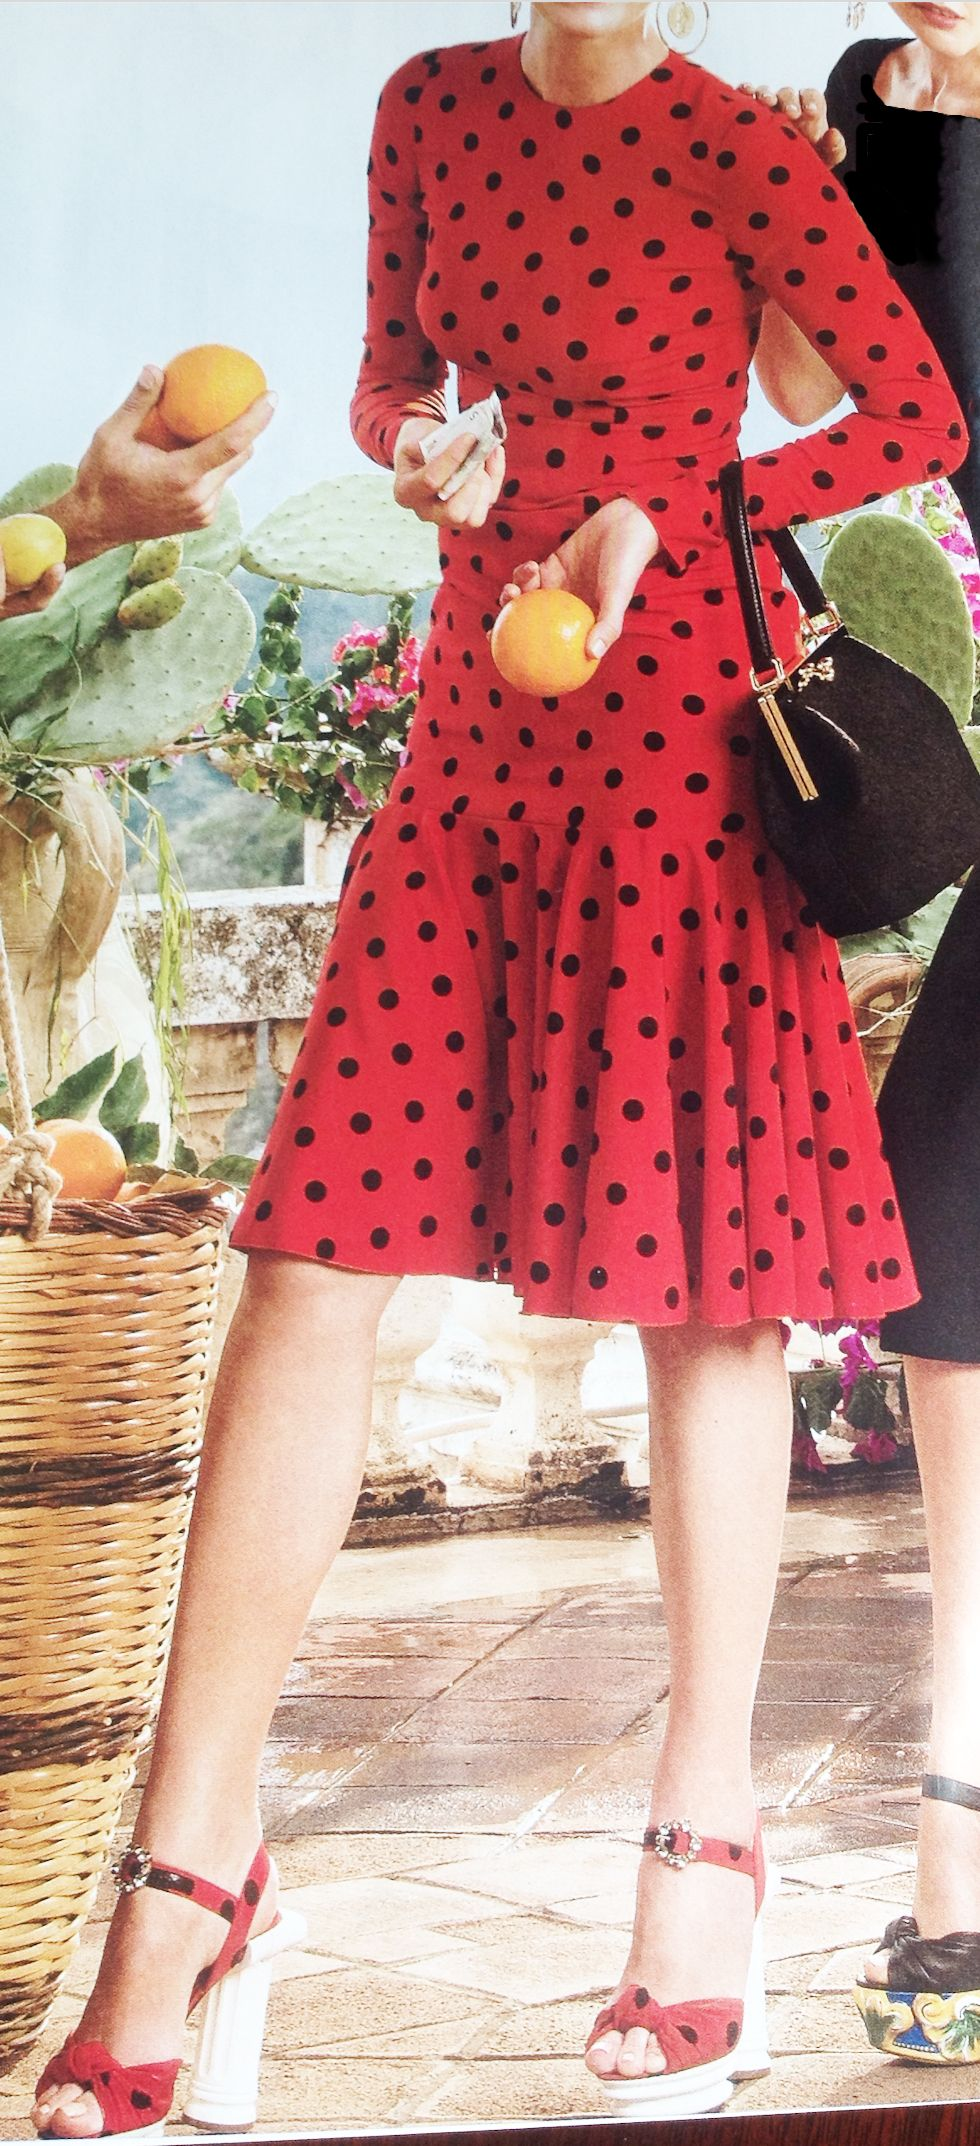 red dress with black polka dots